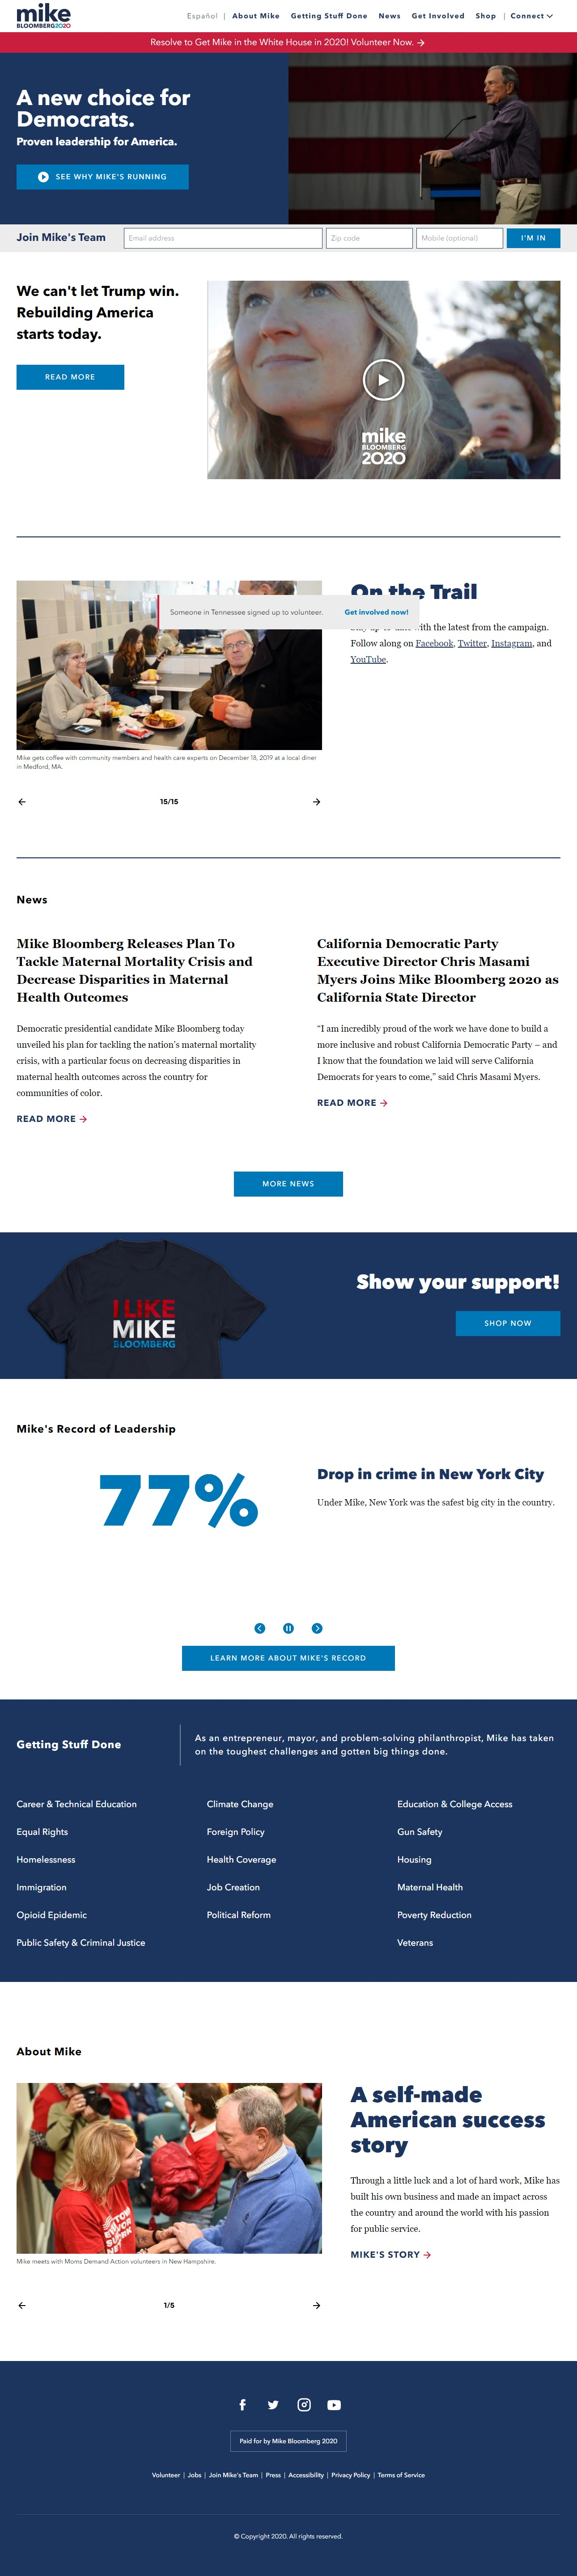 Homepage Snapshot for January 1, 2020: Former Mayor Michael Bloomberg